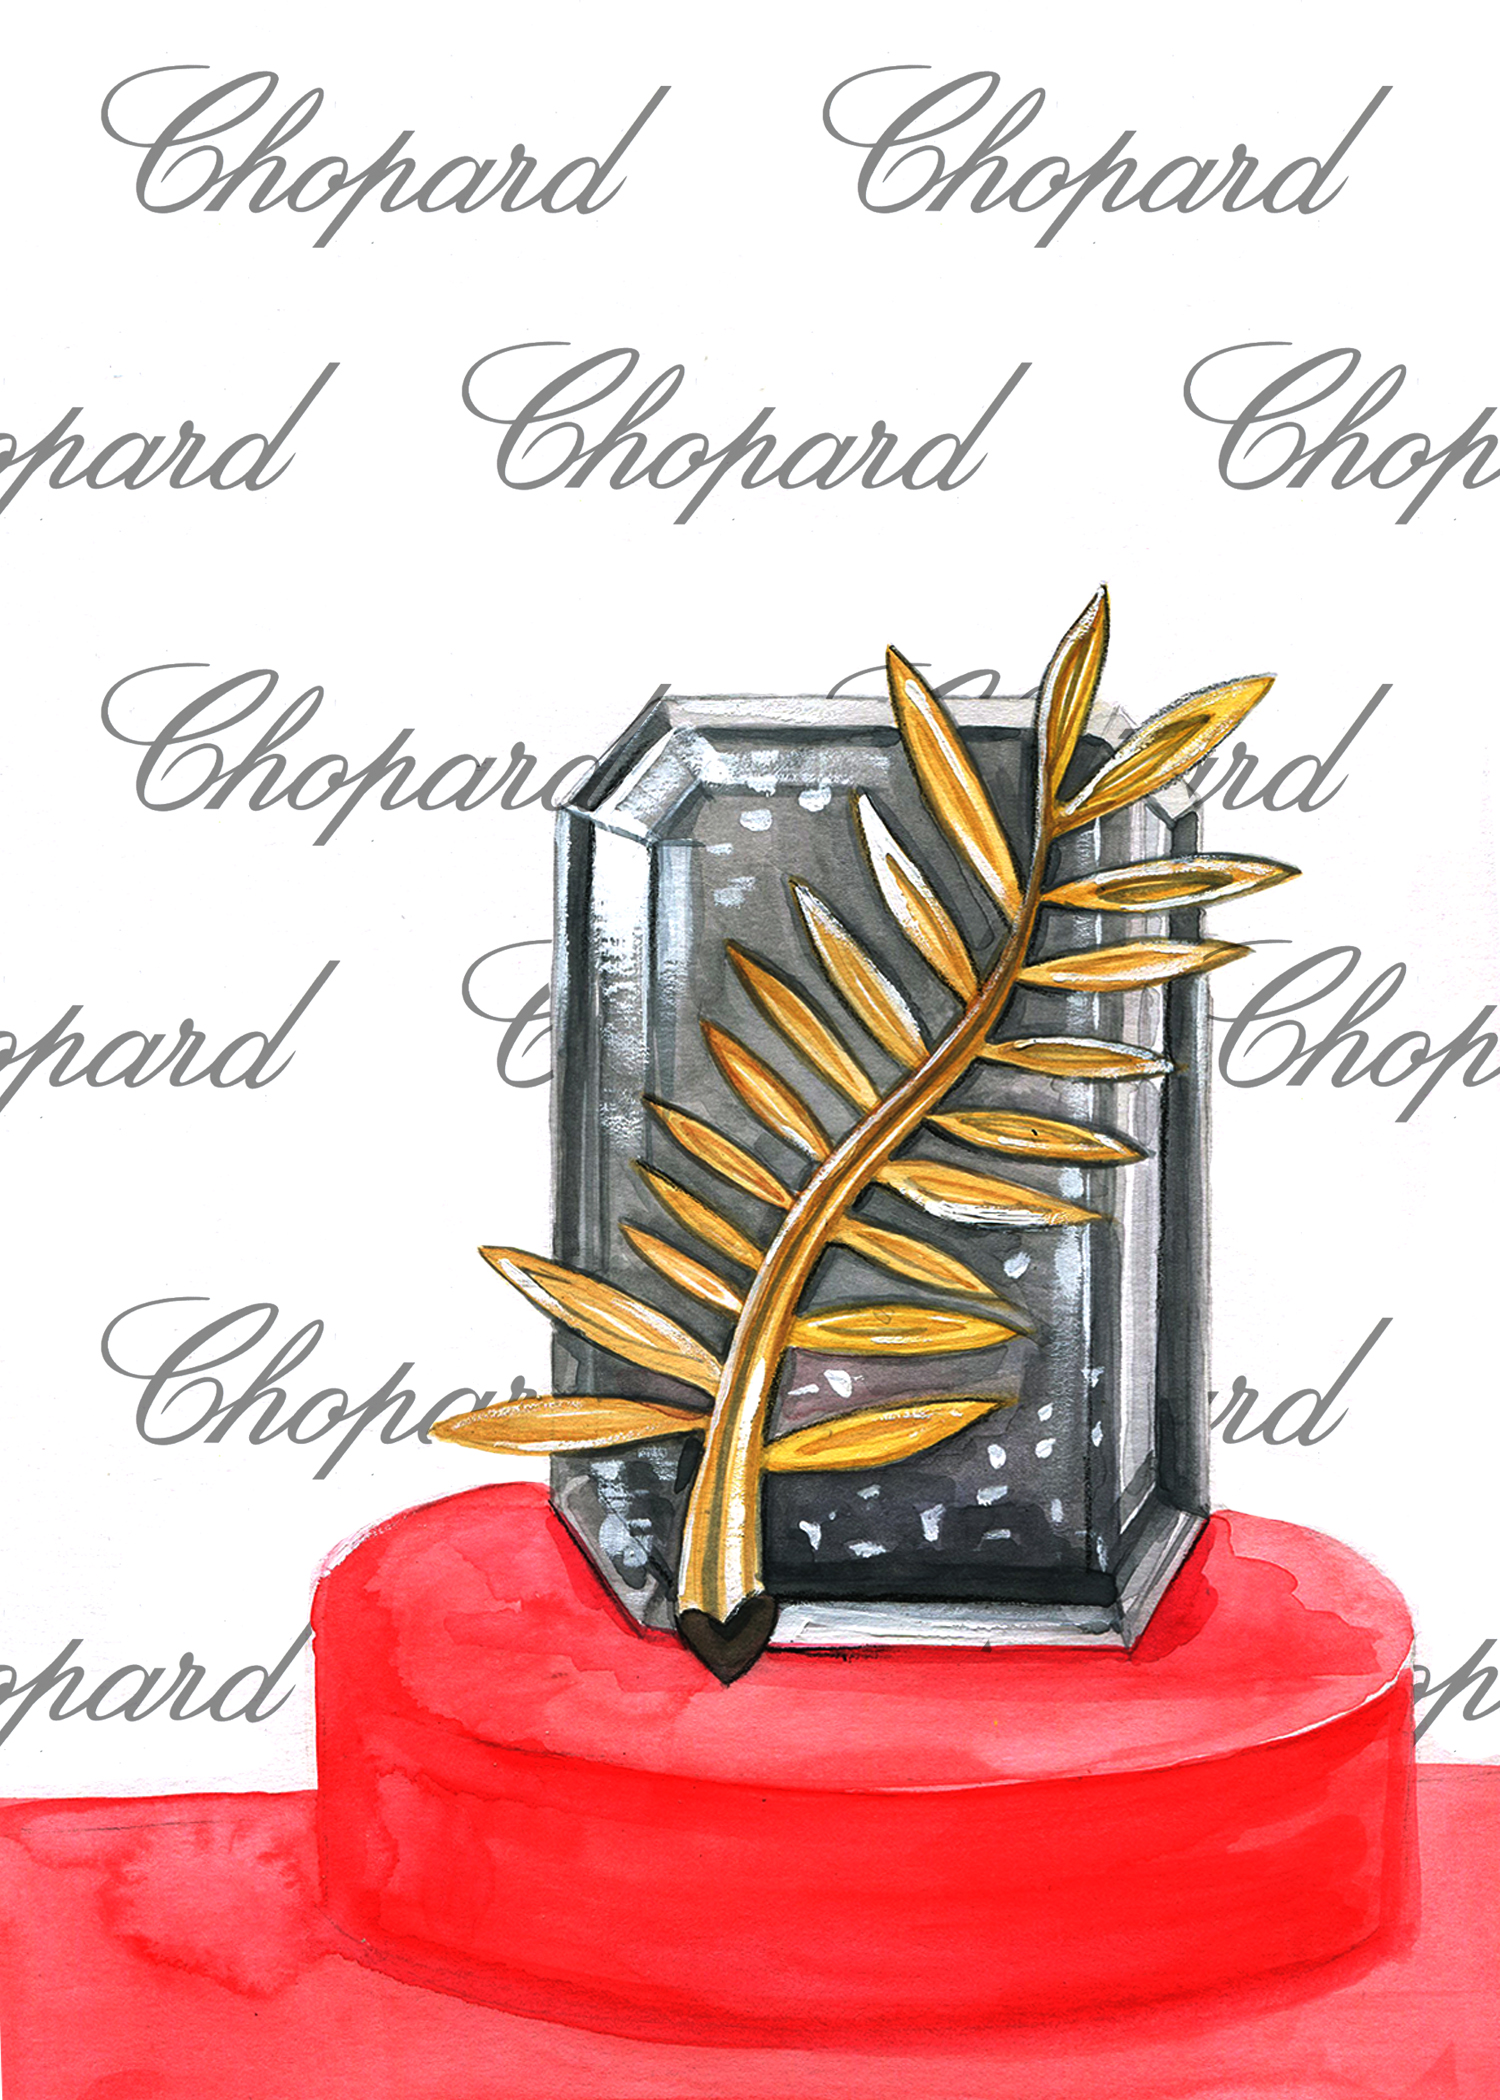 Invitation of Chopard Red Carpet Collection by Houston Fashion Illustrator Rongrong DeVoe